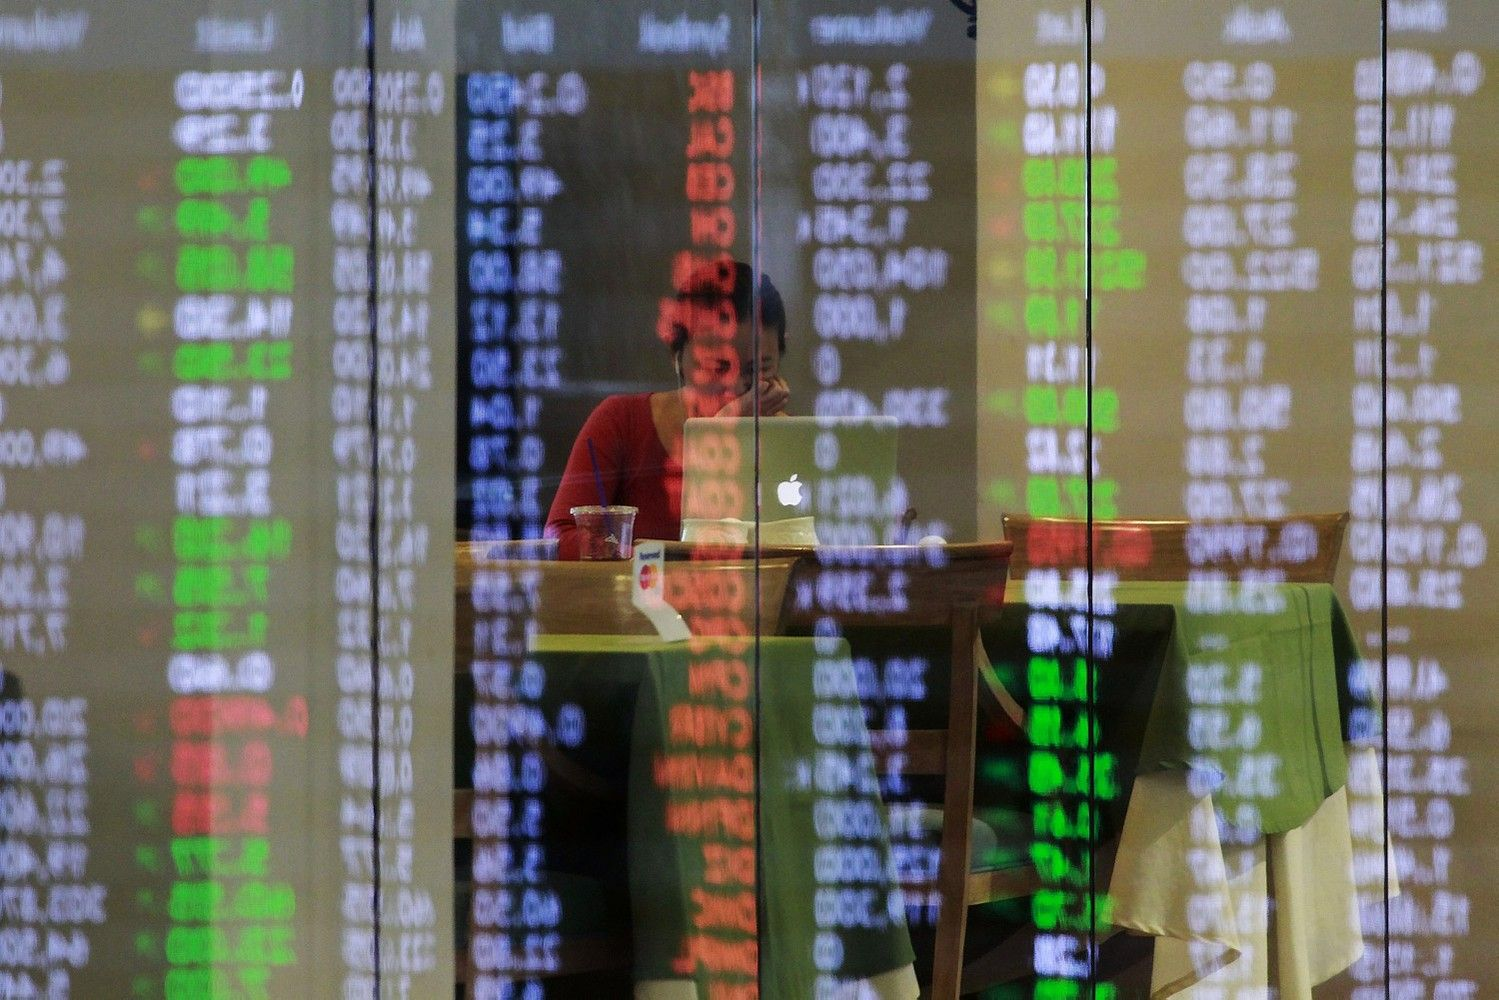 Yields Stay Higher, Stock Futures Flat Before Jobs: Markets Wrap